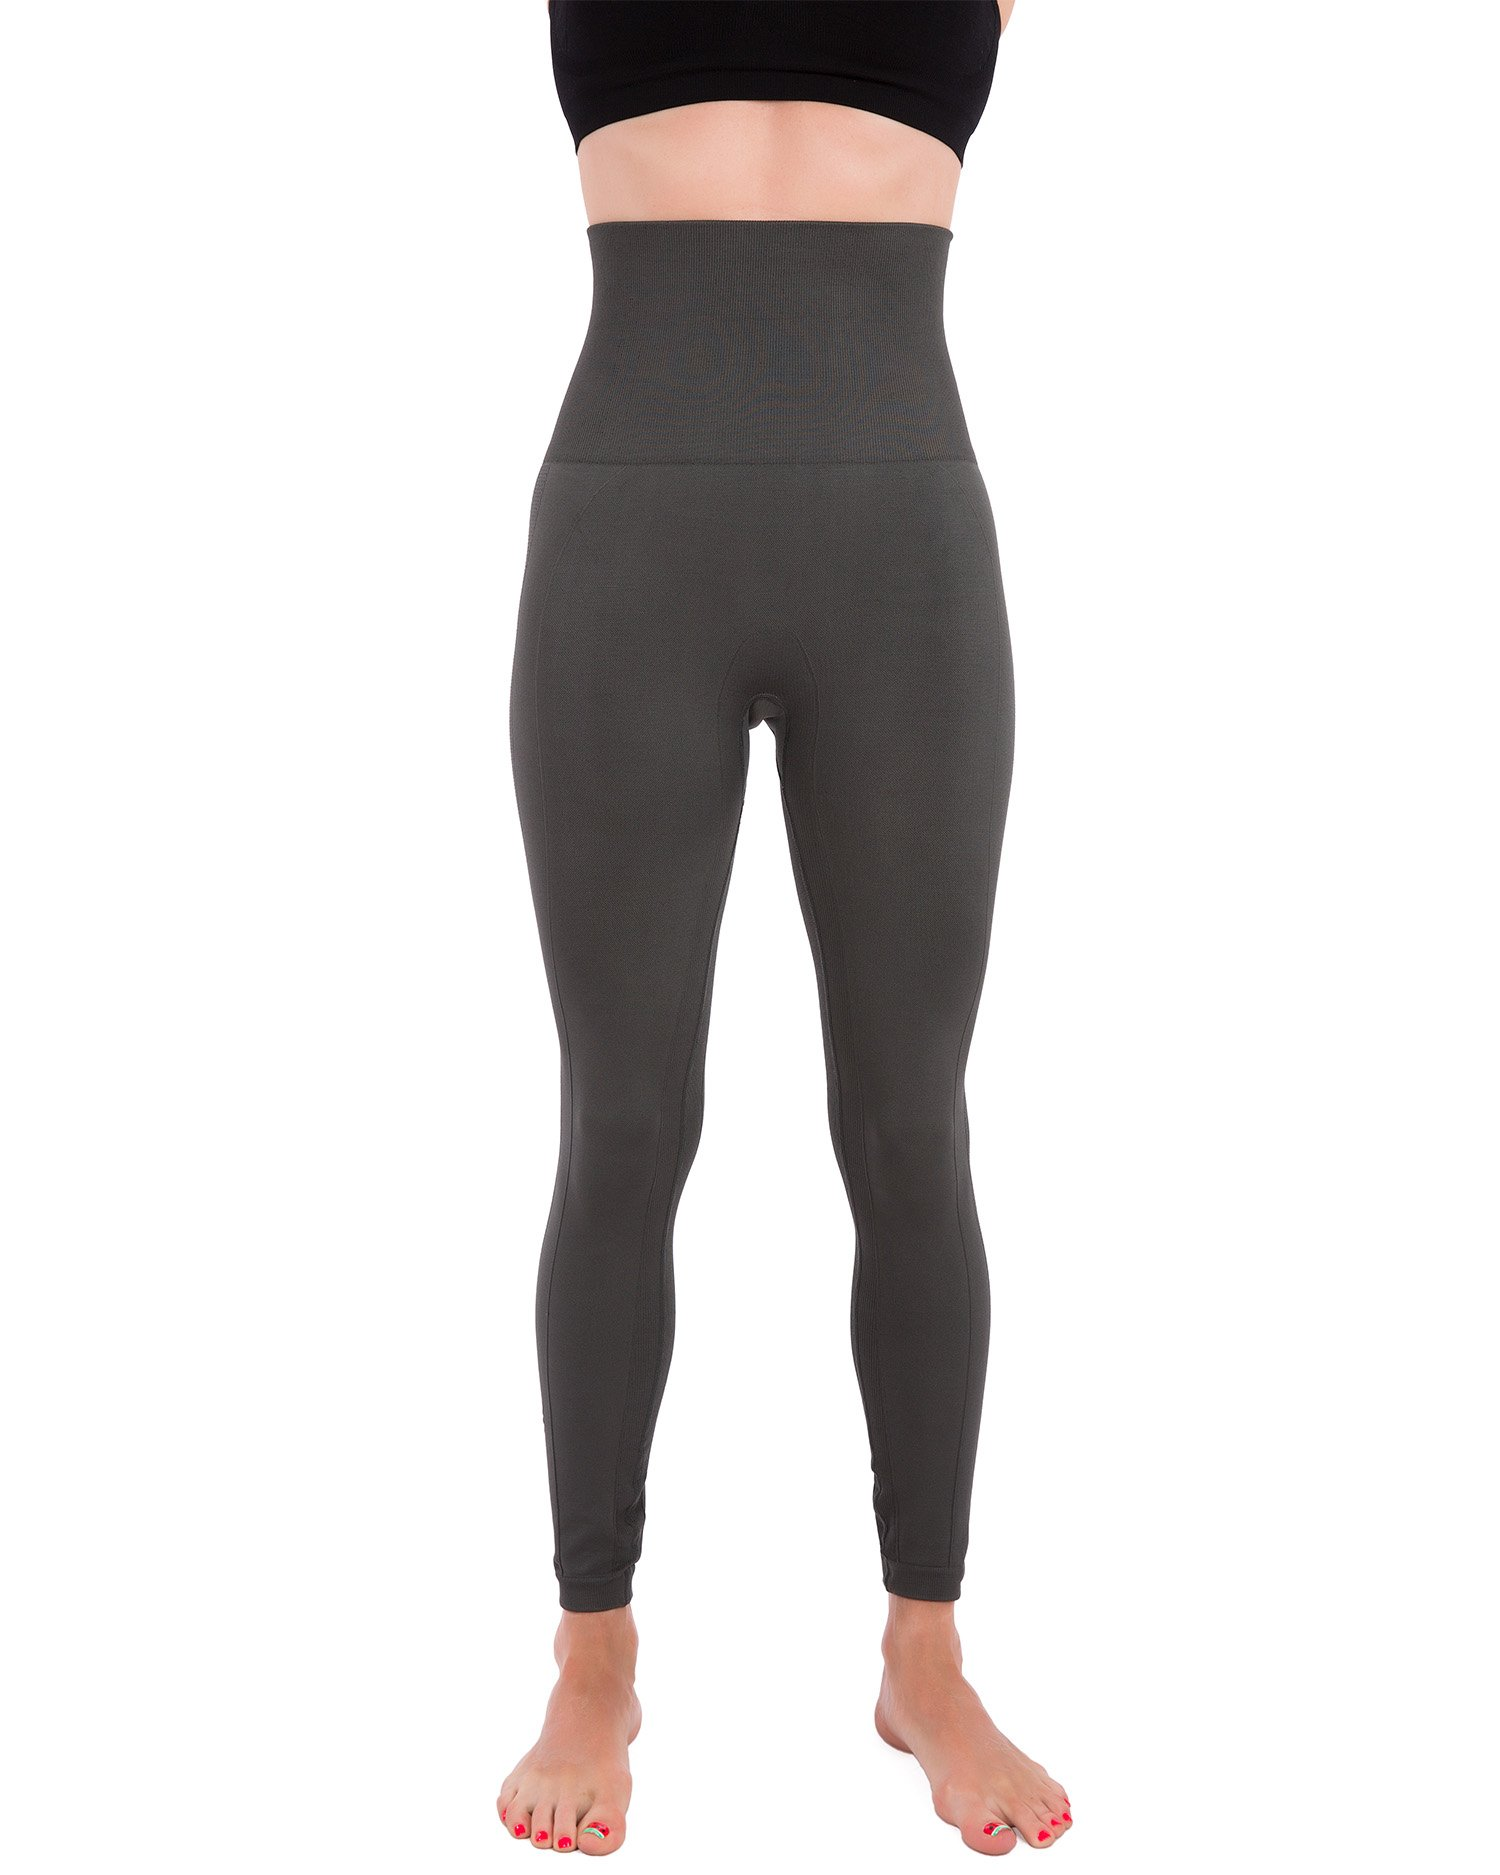 Homma Activewear Thick High Waist Tummy Compression Slimming Body Leggings Pant (Large, Charcoal)